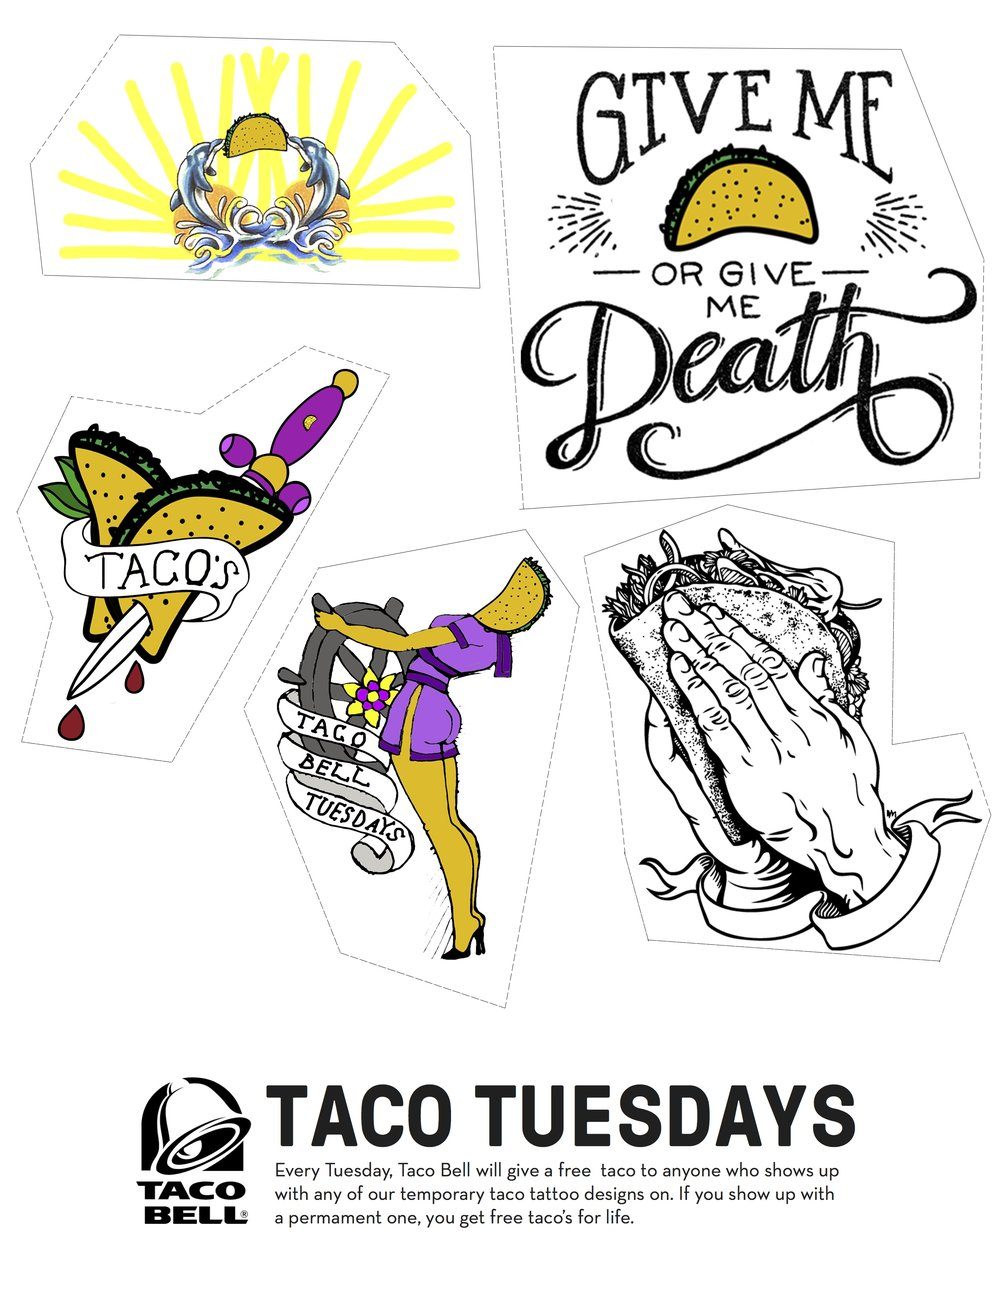 TacoTuesdayPages.jpg